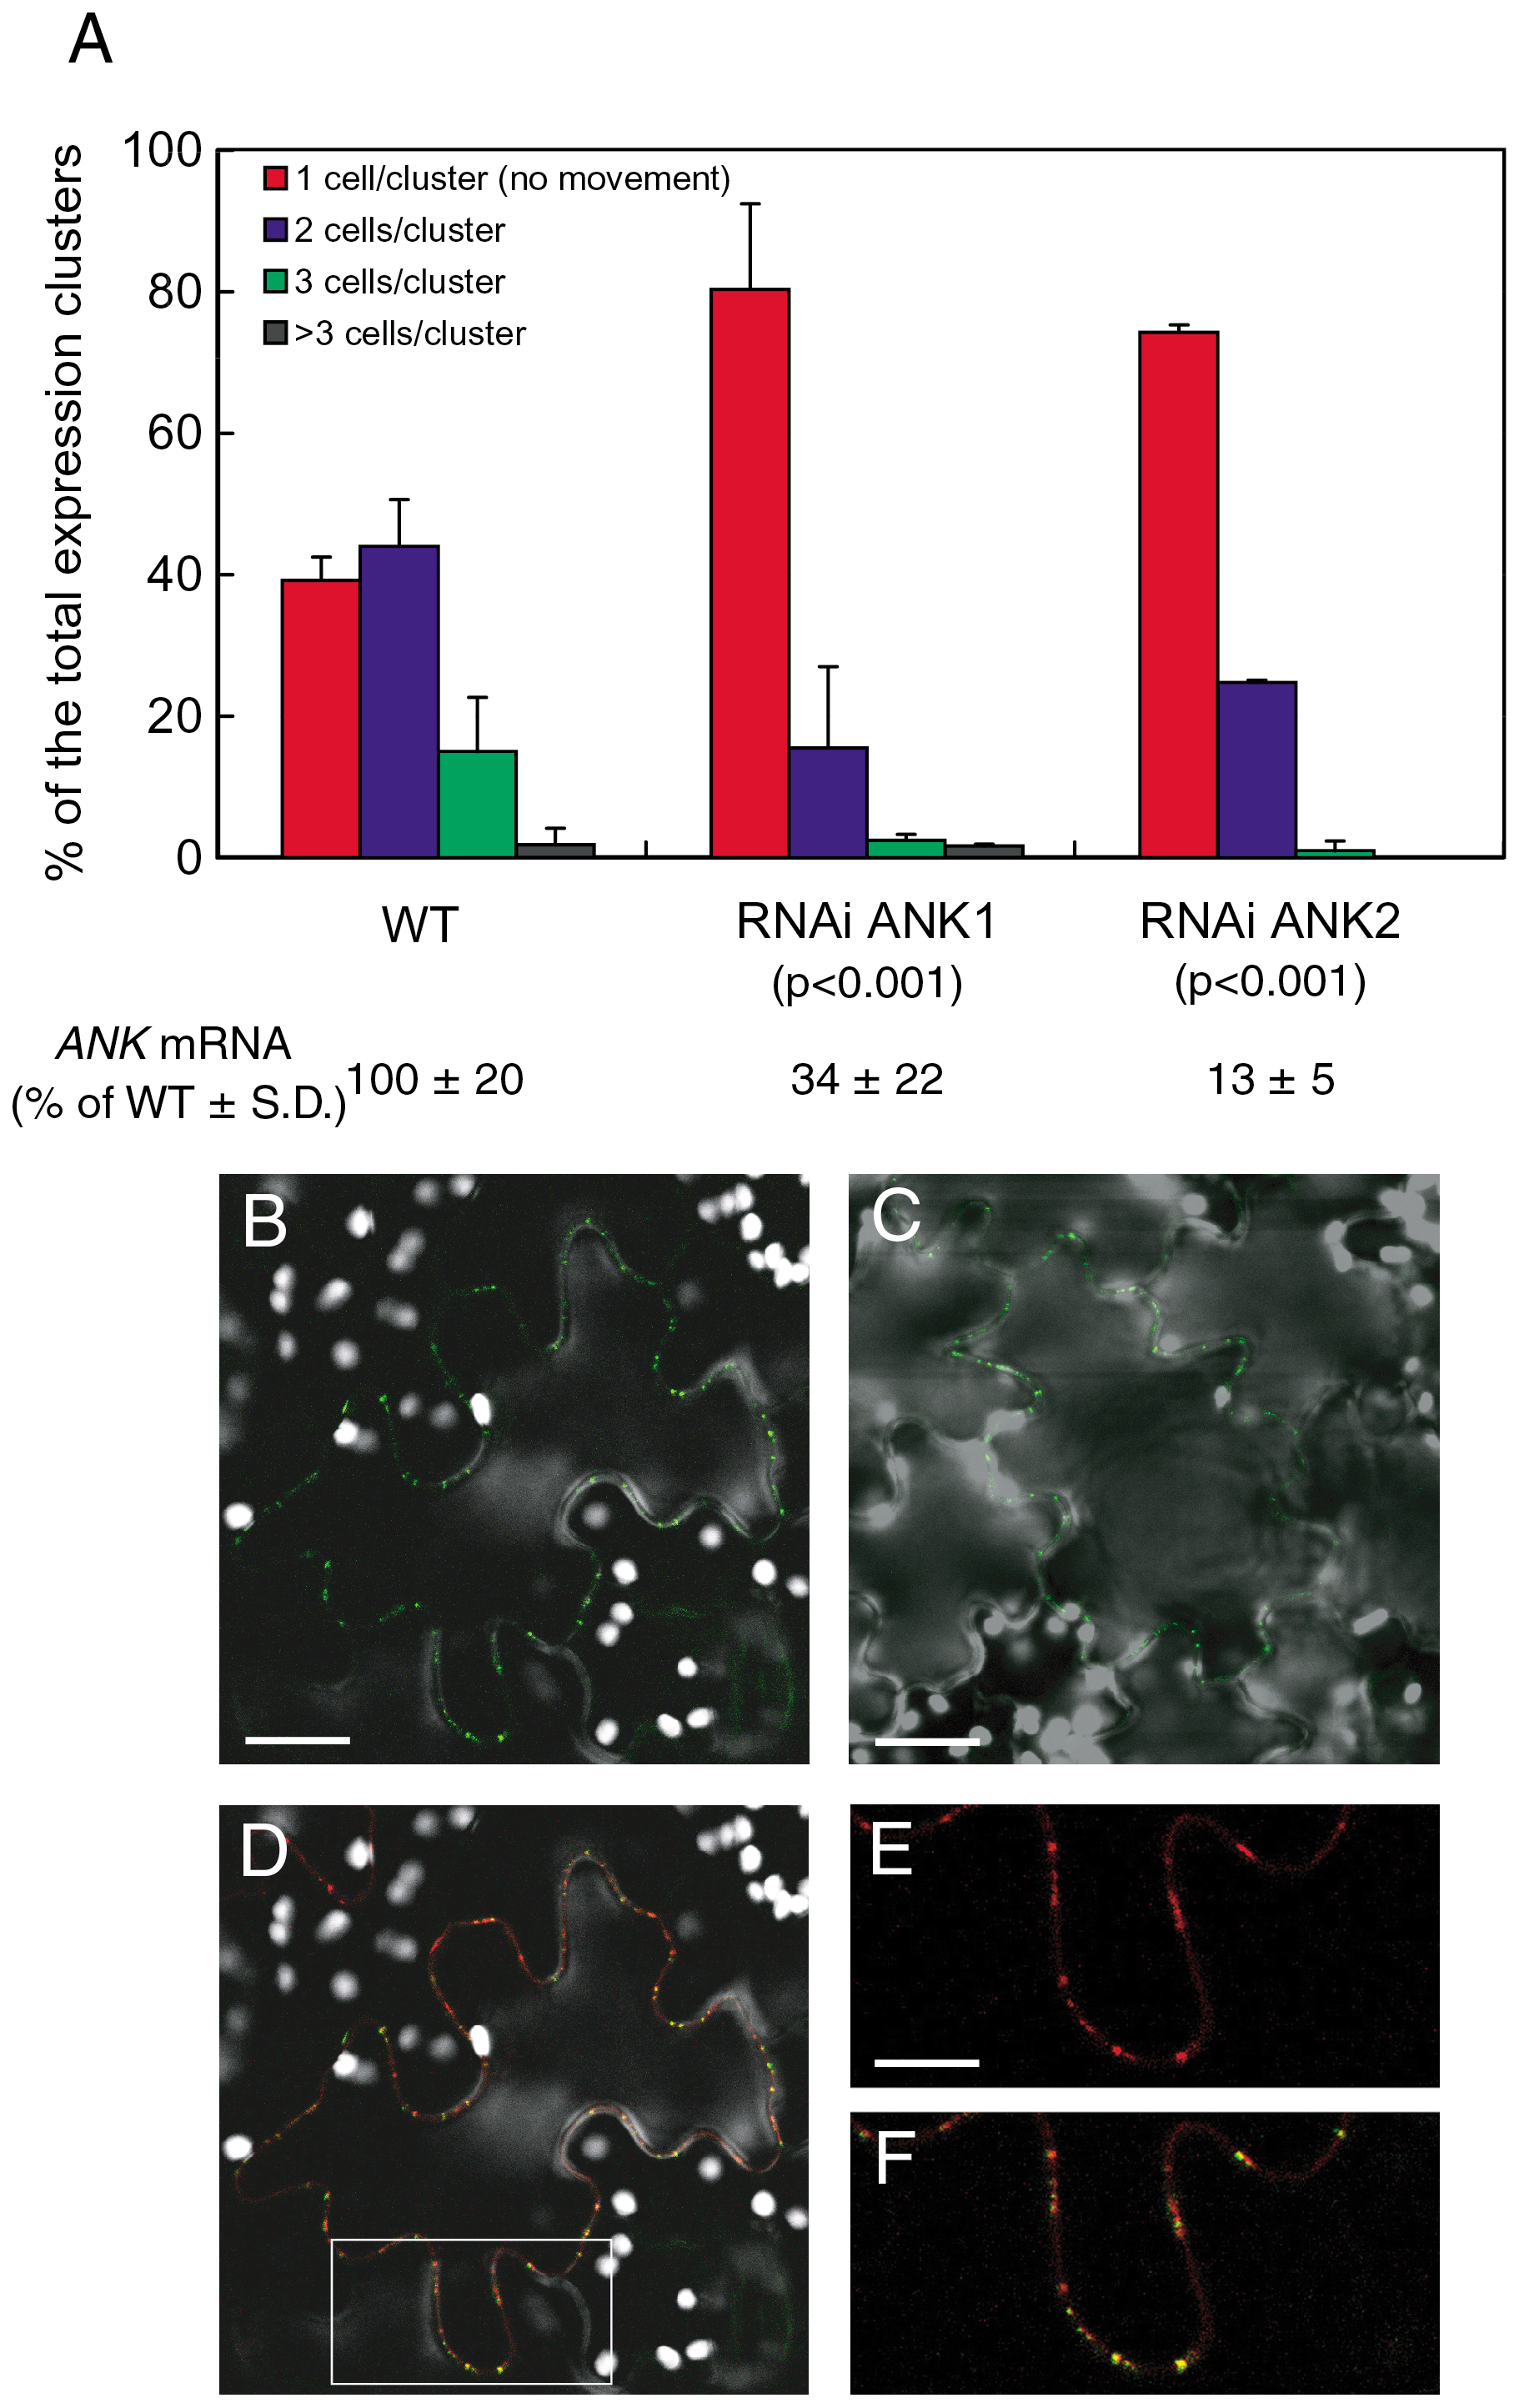 Reduced cell-to-cell movement of MP-YFP in RNAi ANK1 and RNAi ANK2 plants and colocalization of MP-YFP and PDCB-mCherry.